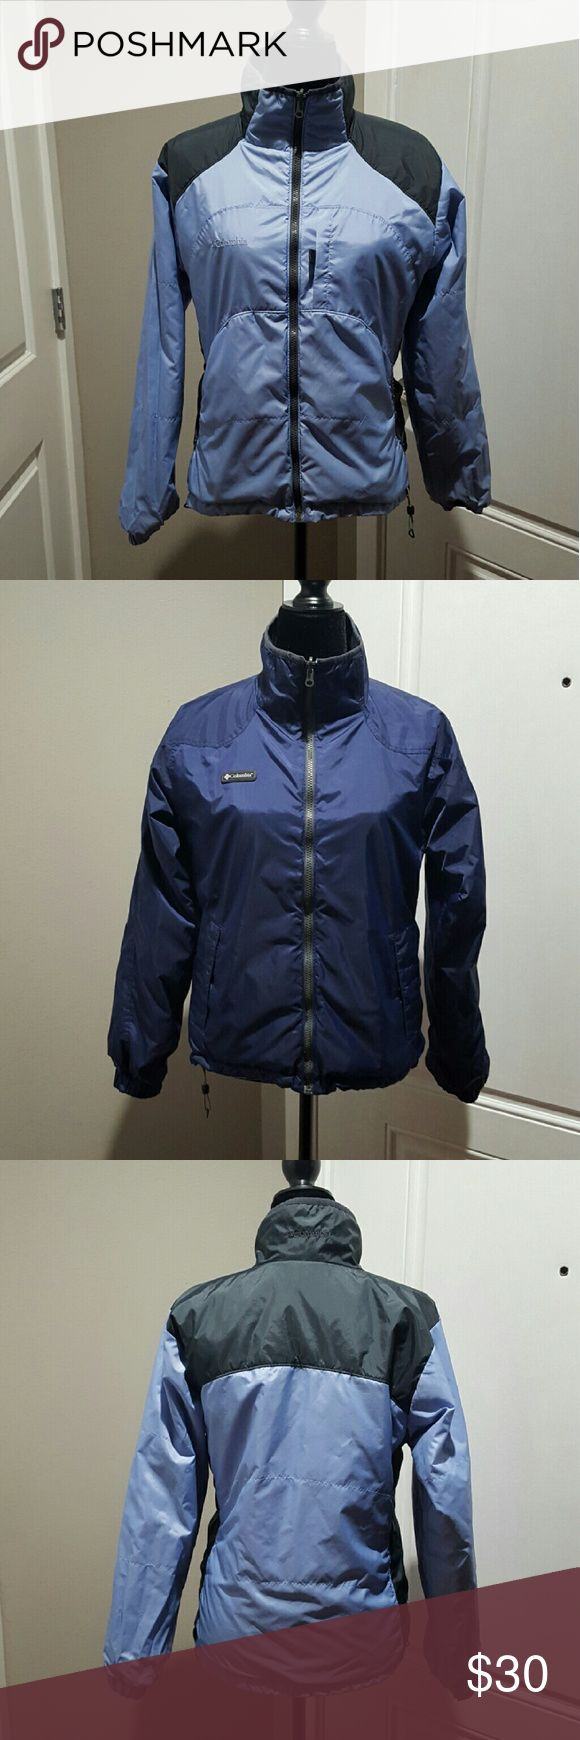 Women's reversible Columbia coat, size medium Women's dark blue reversible to a light blue Columbia coat.  Size medium.  There are no stains or tares on the dark blue side. The only Discoloration is on light blue side on the cuffs, shown in picture.  No tares or anything on the light blue side. Columbia  Jackets & Coats